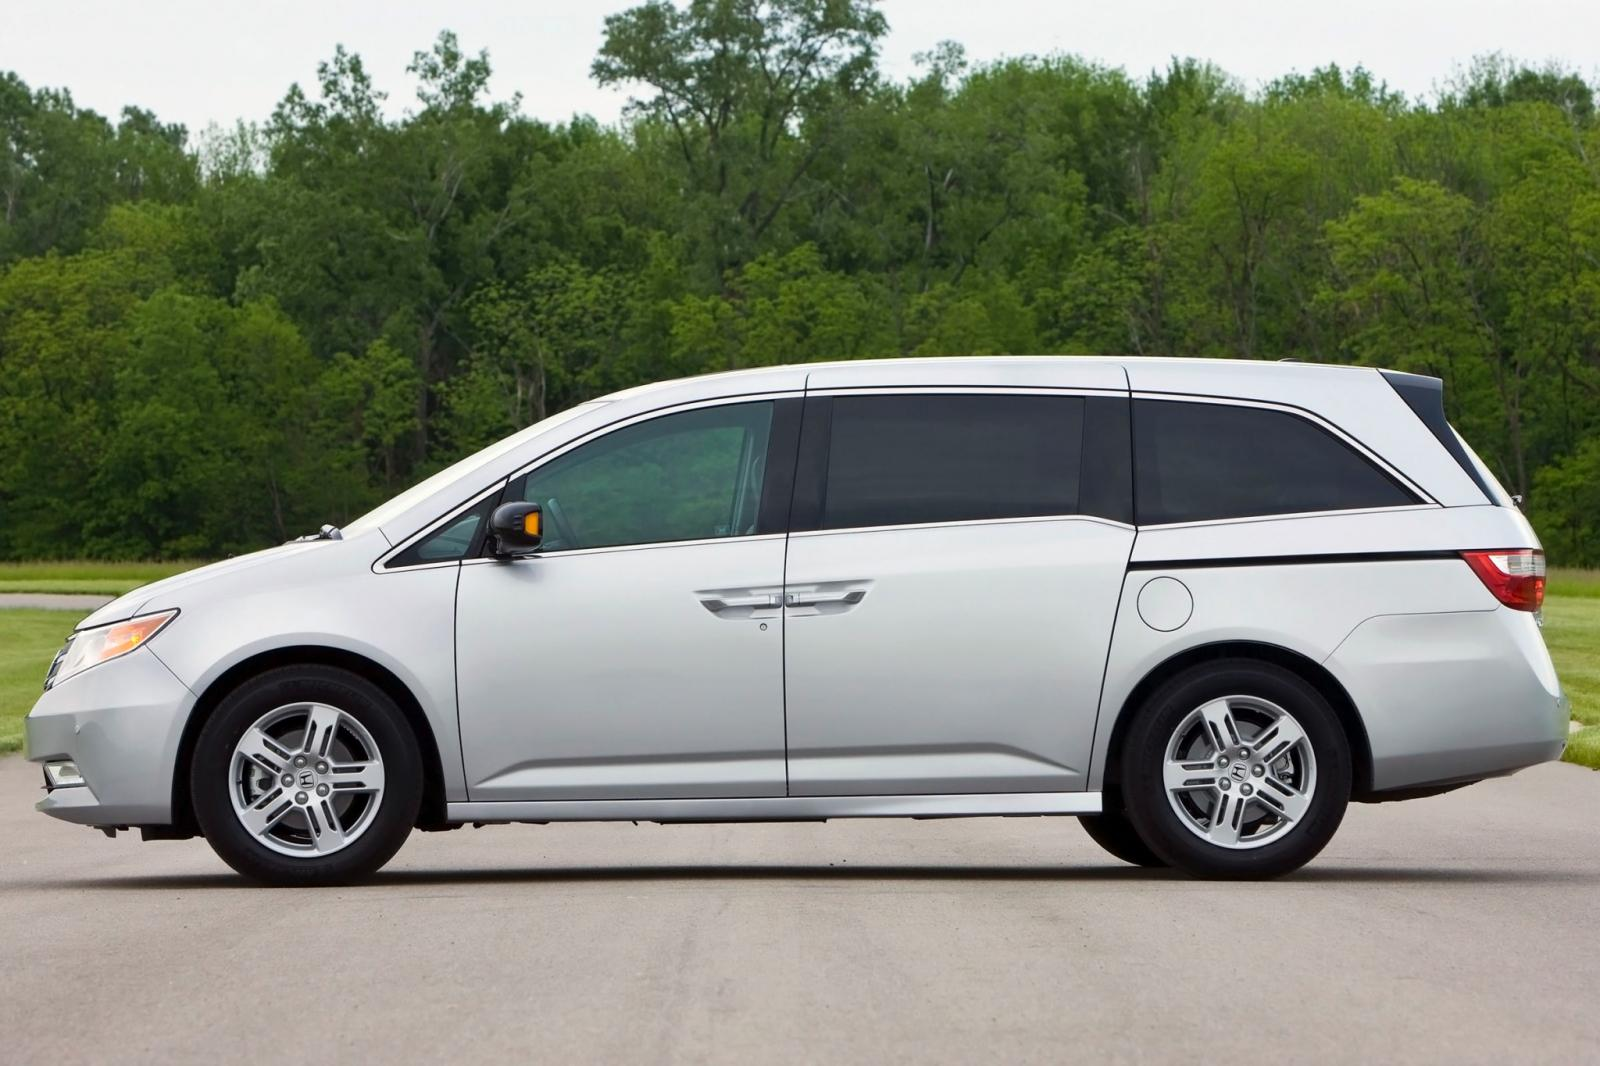 2014 honda odyssey information and photos zombiedrive. Black Bedroom Furniture Sets. Home Design Ideas